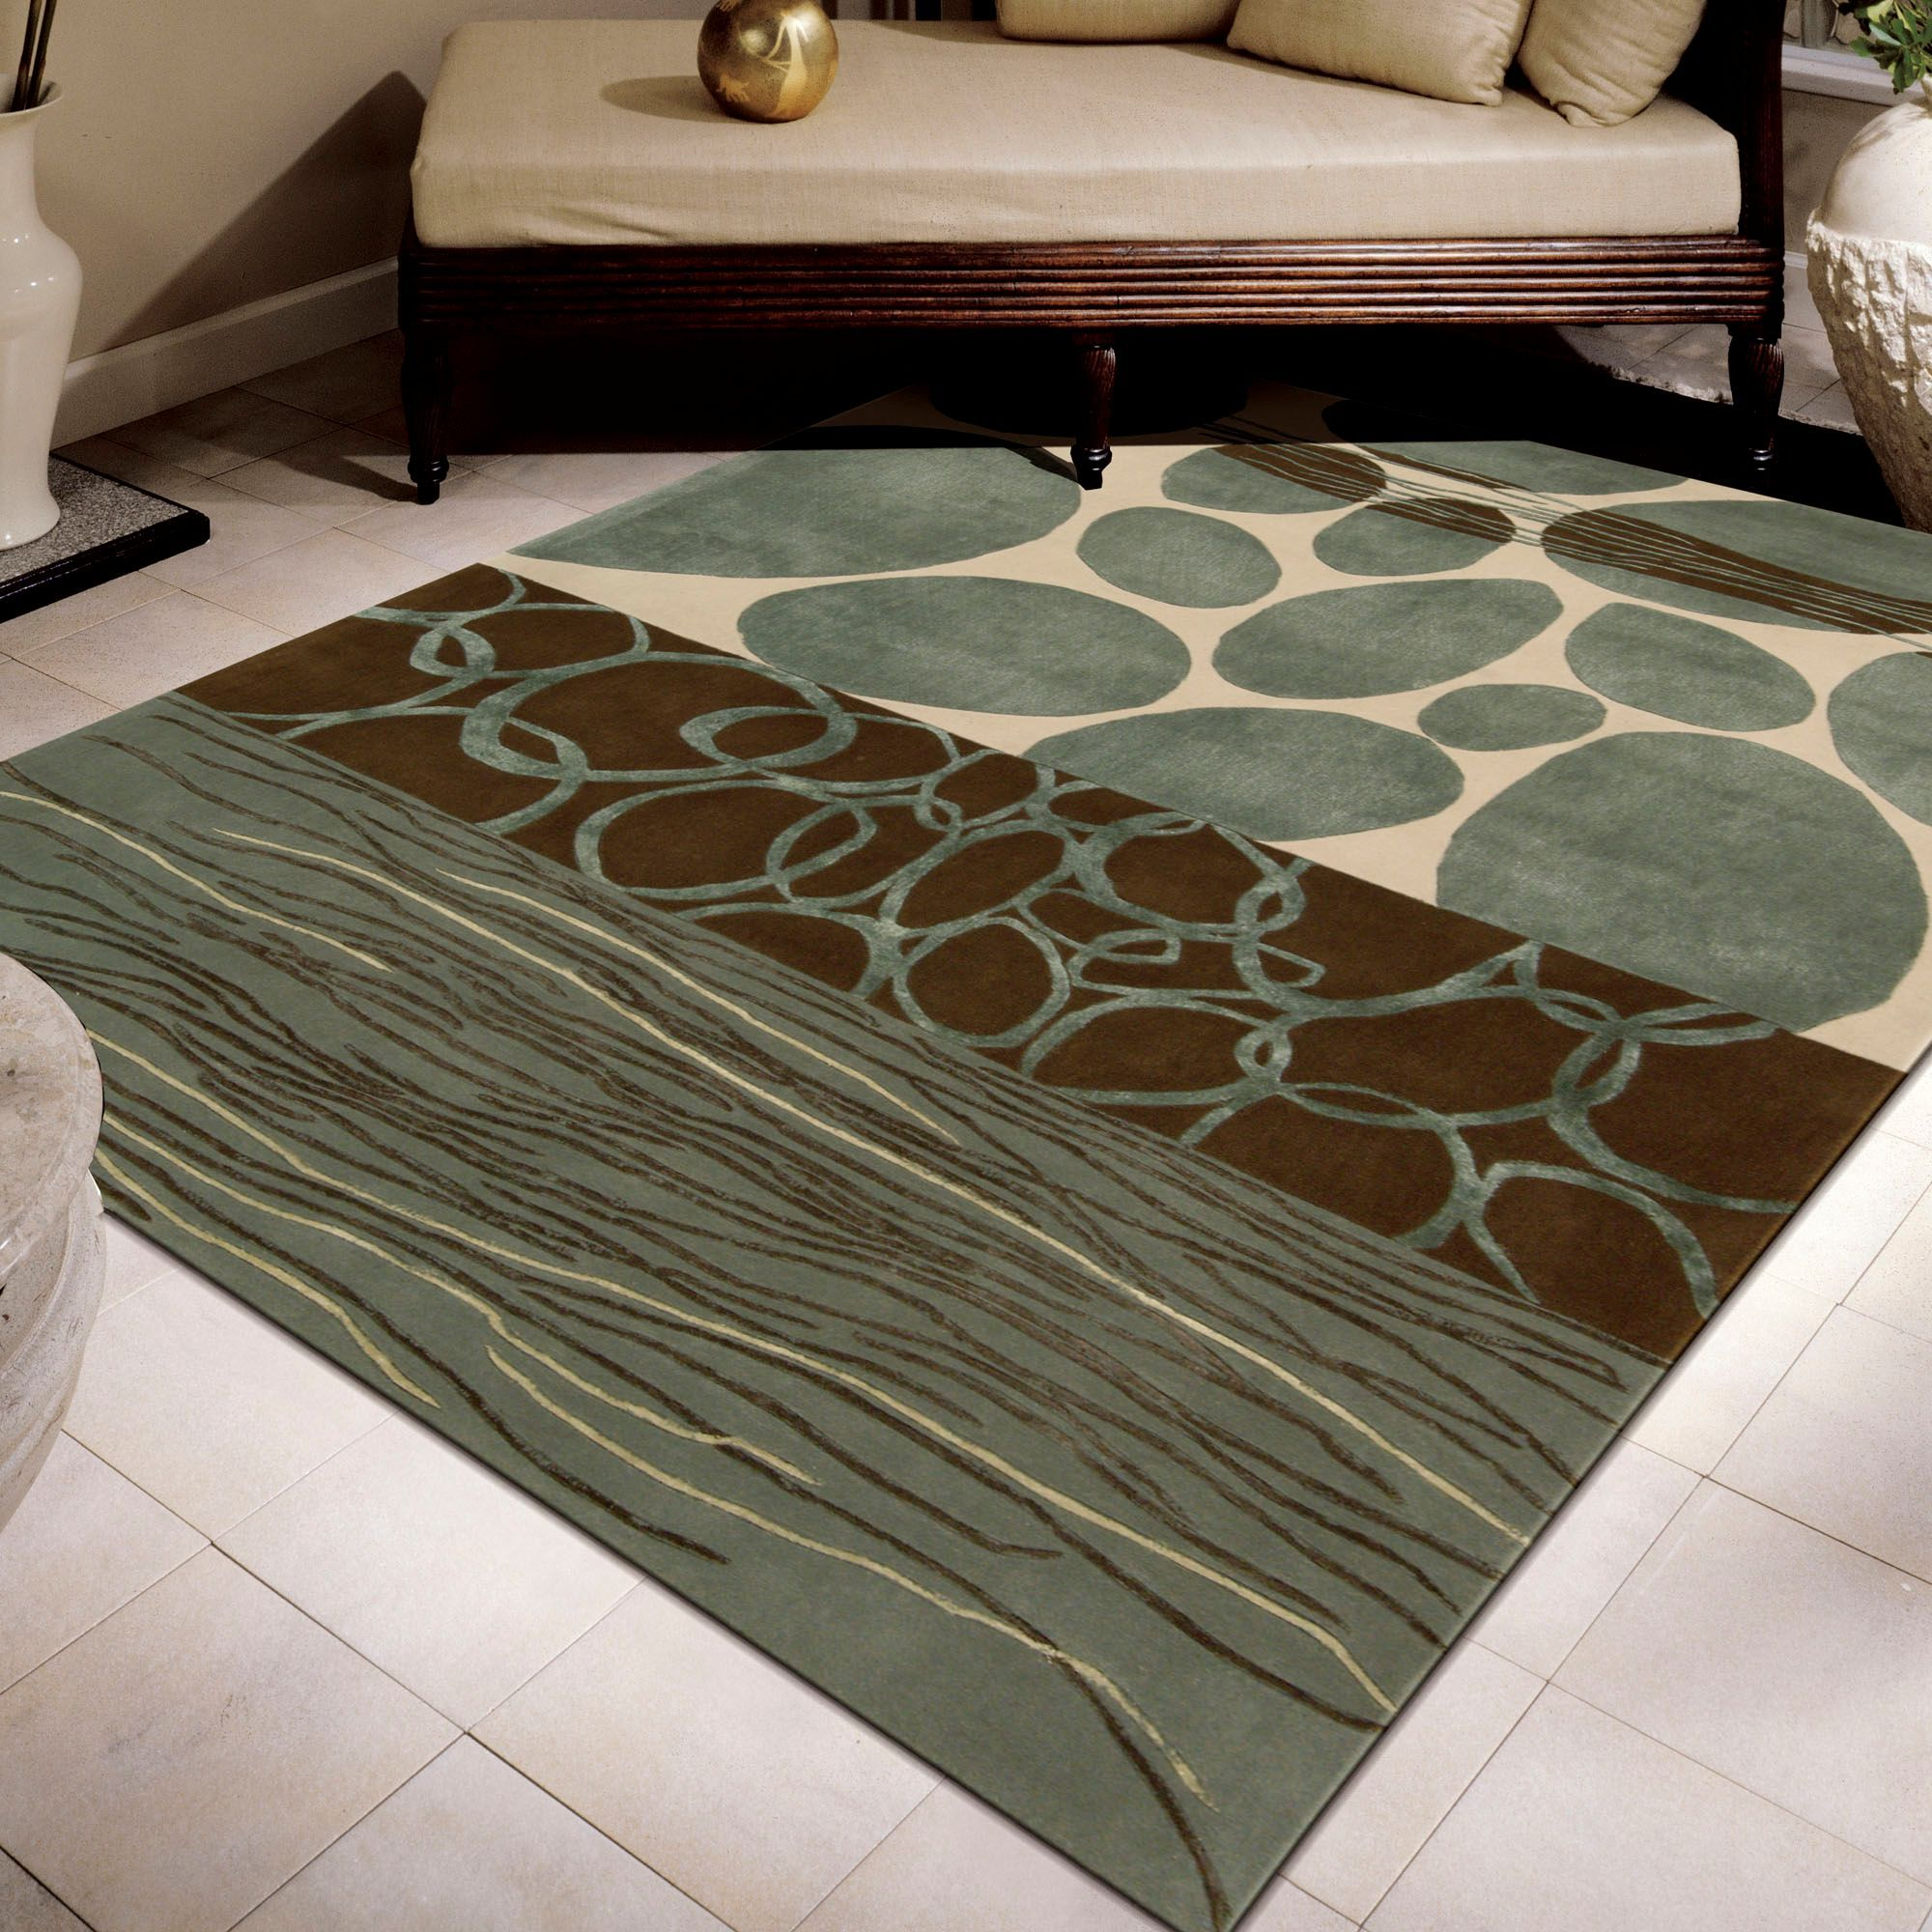 Charming Home Depot Rugs Round Homedepot6ftroundrugs